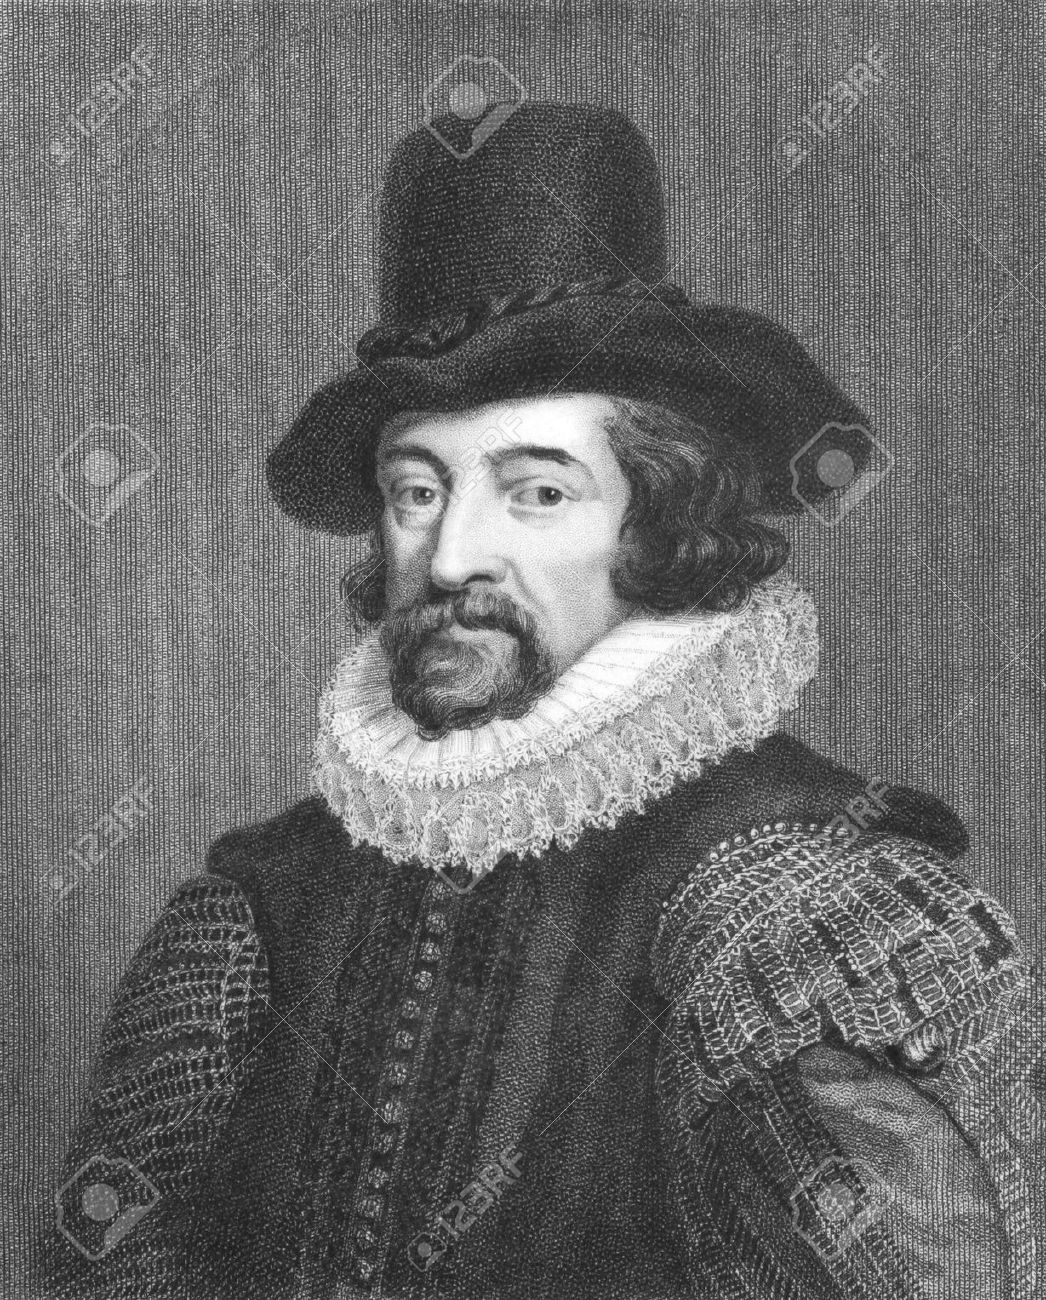 Francis Bacon (1561-1626) on engraving from the 1800s. English philosopher, statesman, lawyer, jurist, author and scientist. Engraved by J.Pofselwhite from a picture by J.Houbraken in 1738 and published in London by Charles Knight & Co, Ludgate Street. Stock Photo - 8520539